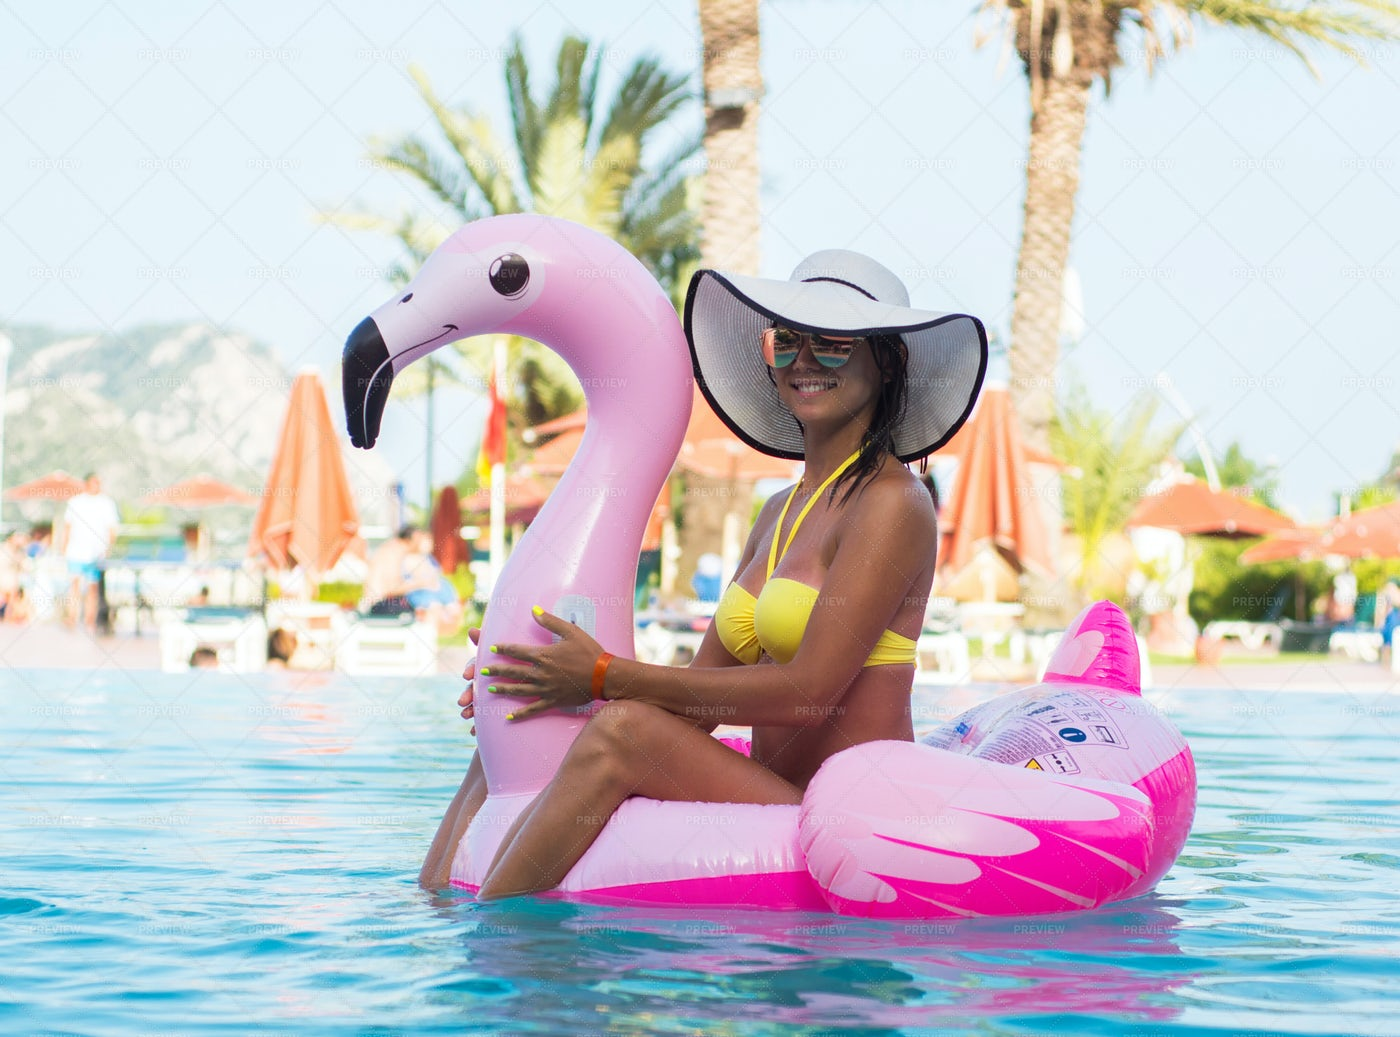 Woman Sitting On Inflatable: Stock Photos